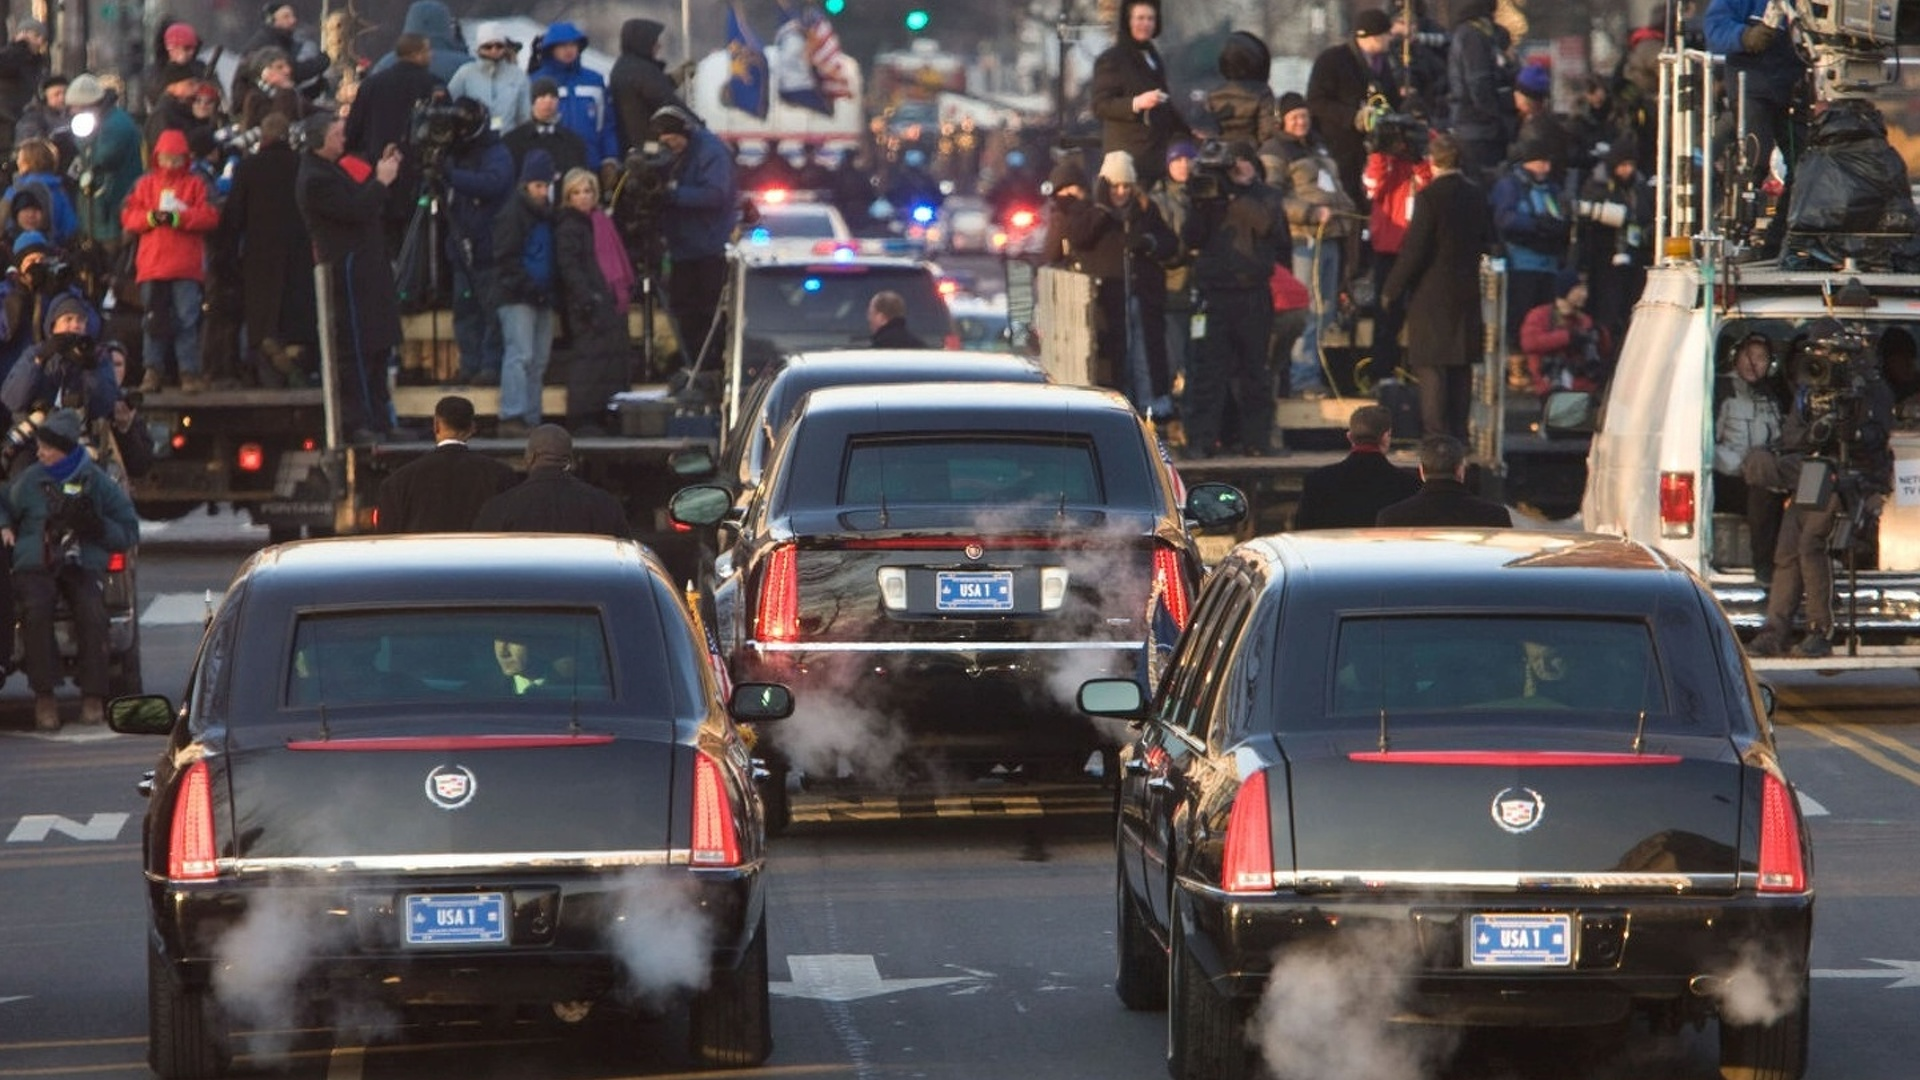 Obama\'s limo detailed, returns 3.7 mpg and weighs around 15,000 lbs